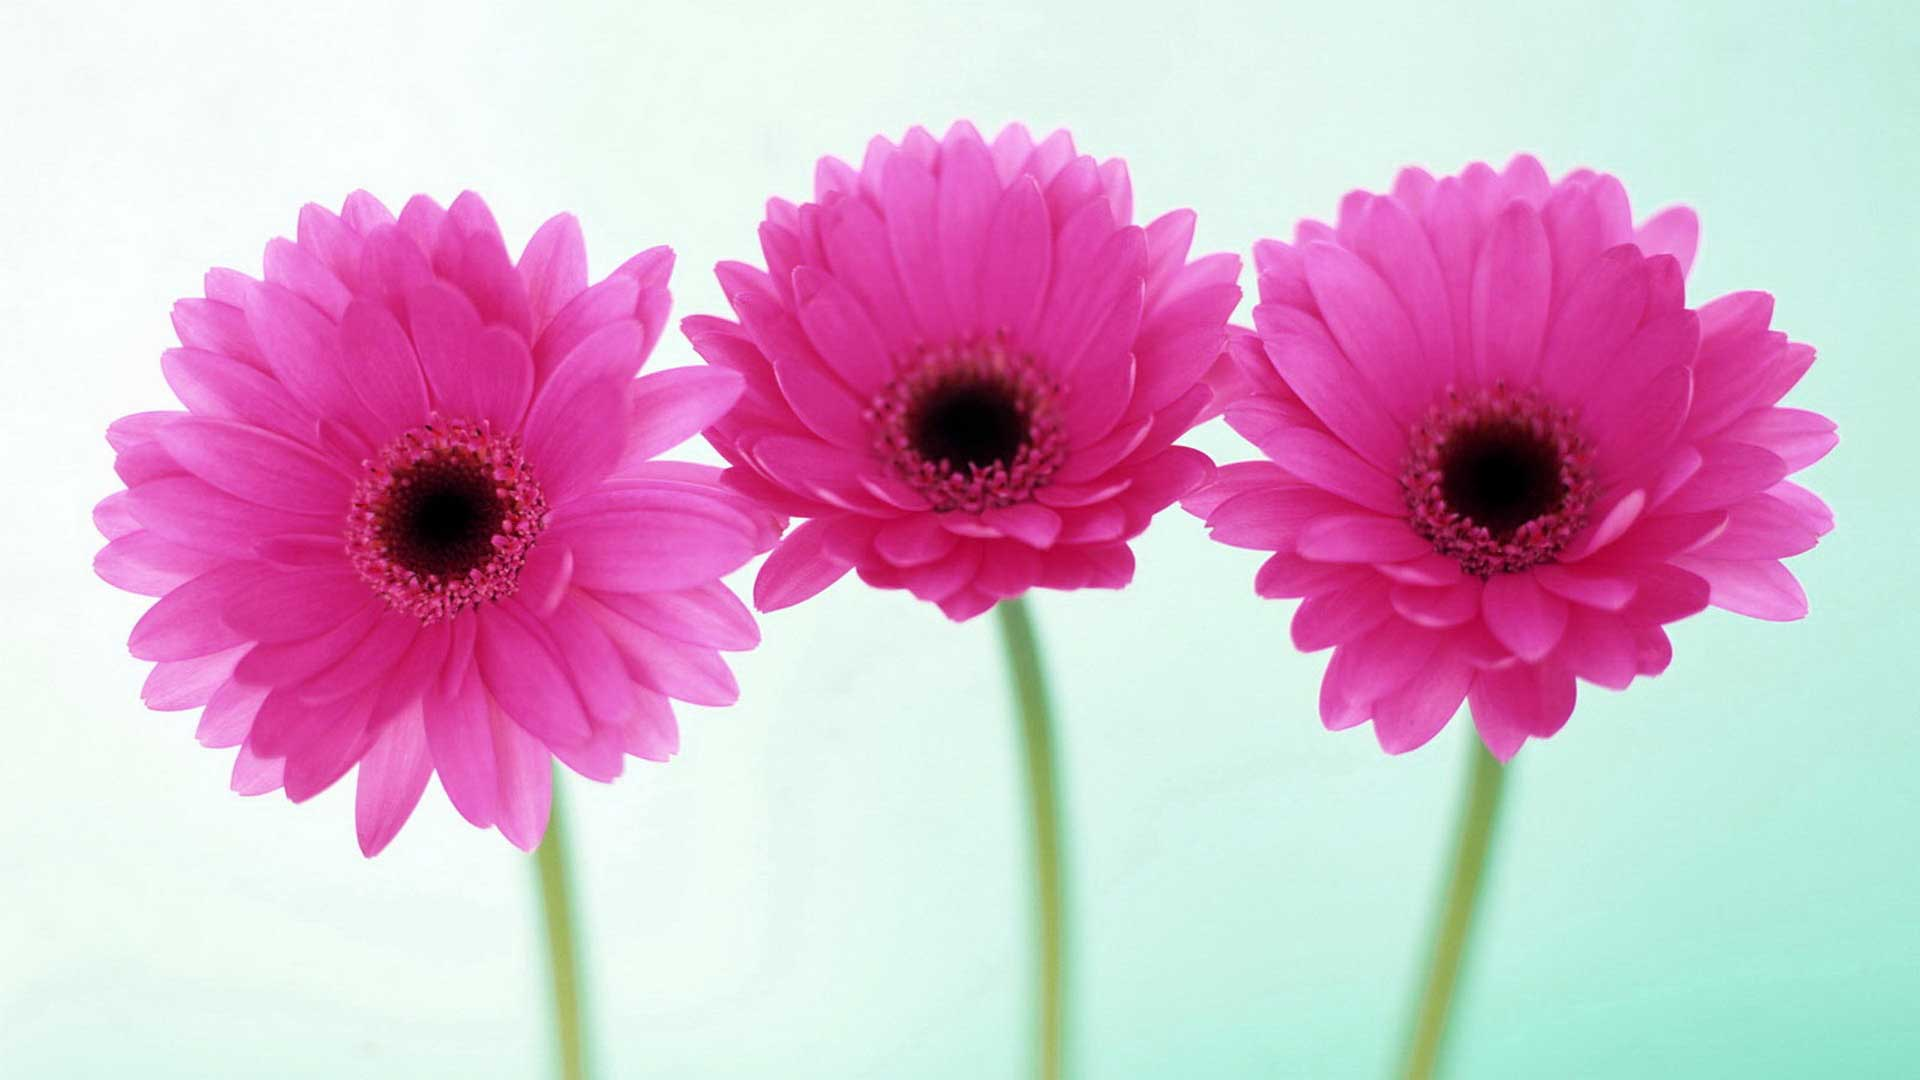 flower pictures /wallpaper Phoot Pics Free Download